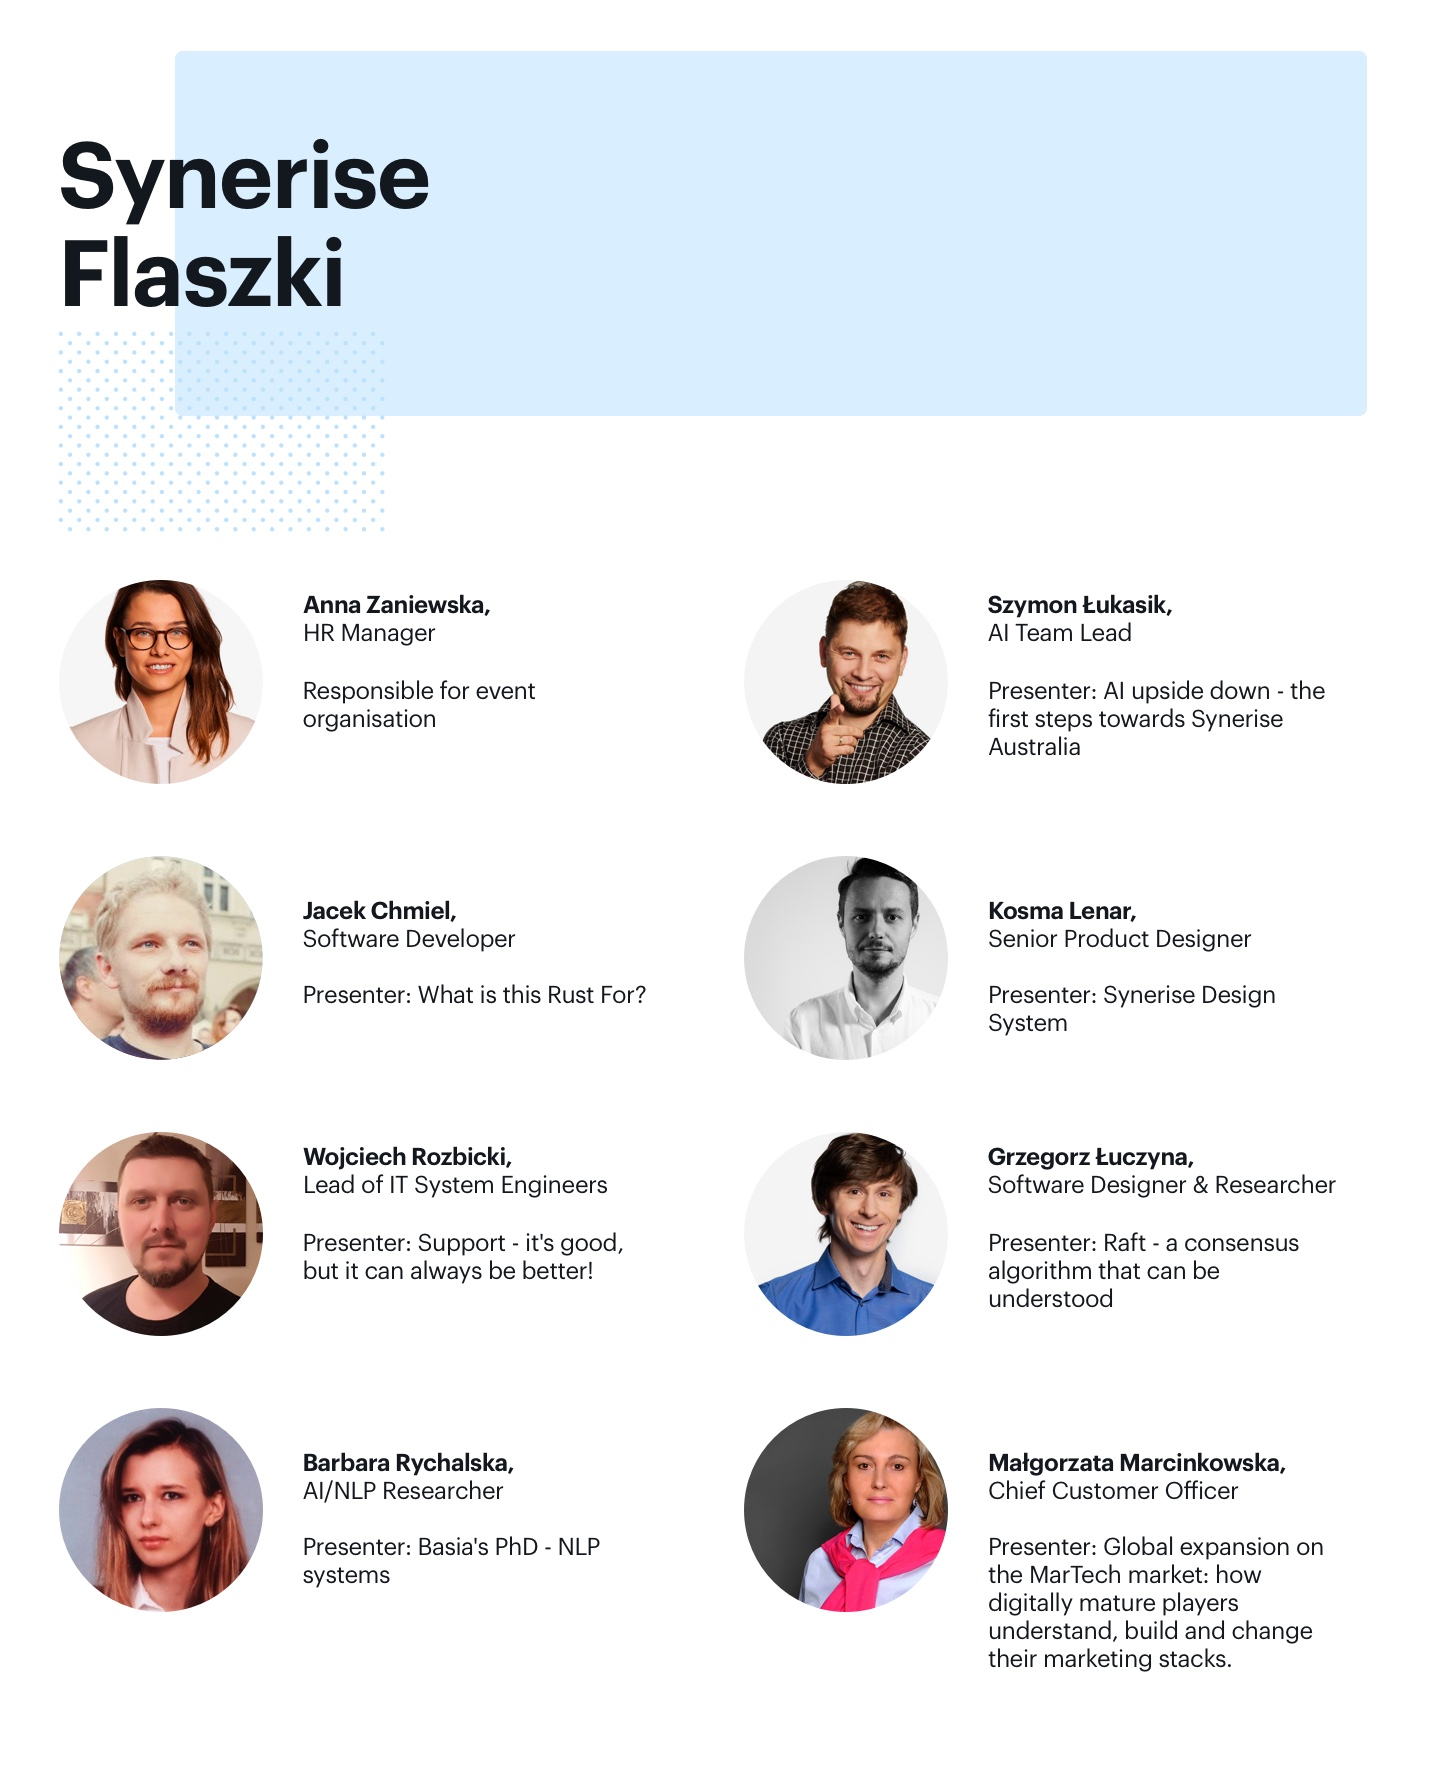 List of speakers who took partn in our previous synerise Flaszki event